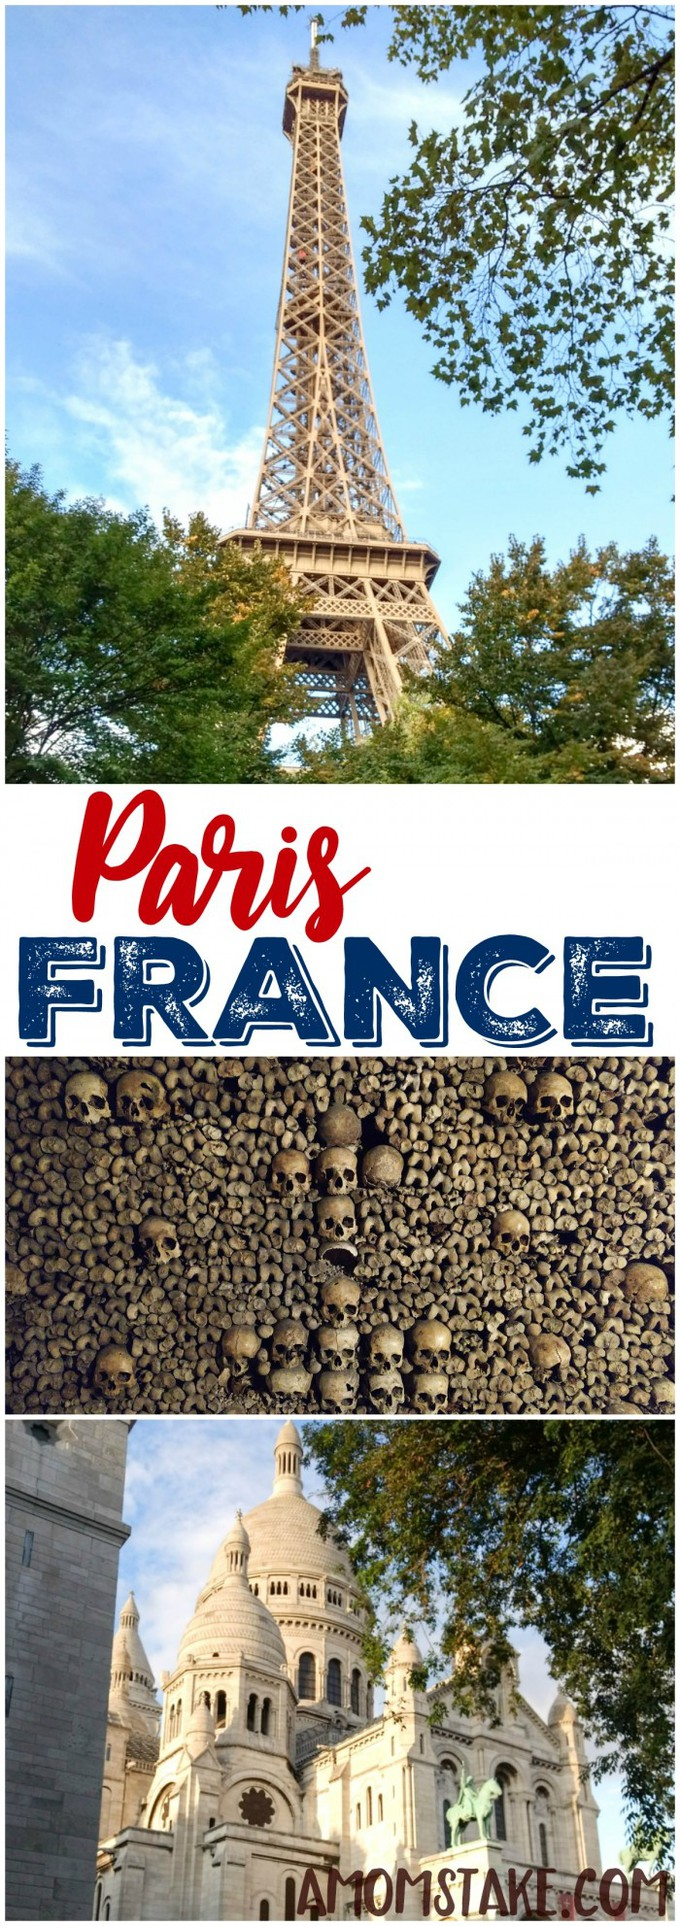 End your incredible western europe road trip in Paris, France to see the Eiffel tower, Catacombs, Sacre Couer and more! #Travel #trip #destination #vacation #Paris #France #Europe #ParisFrance